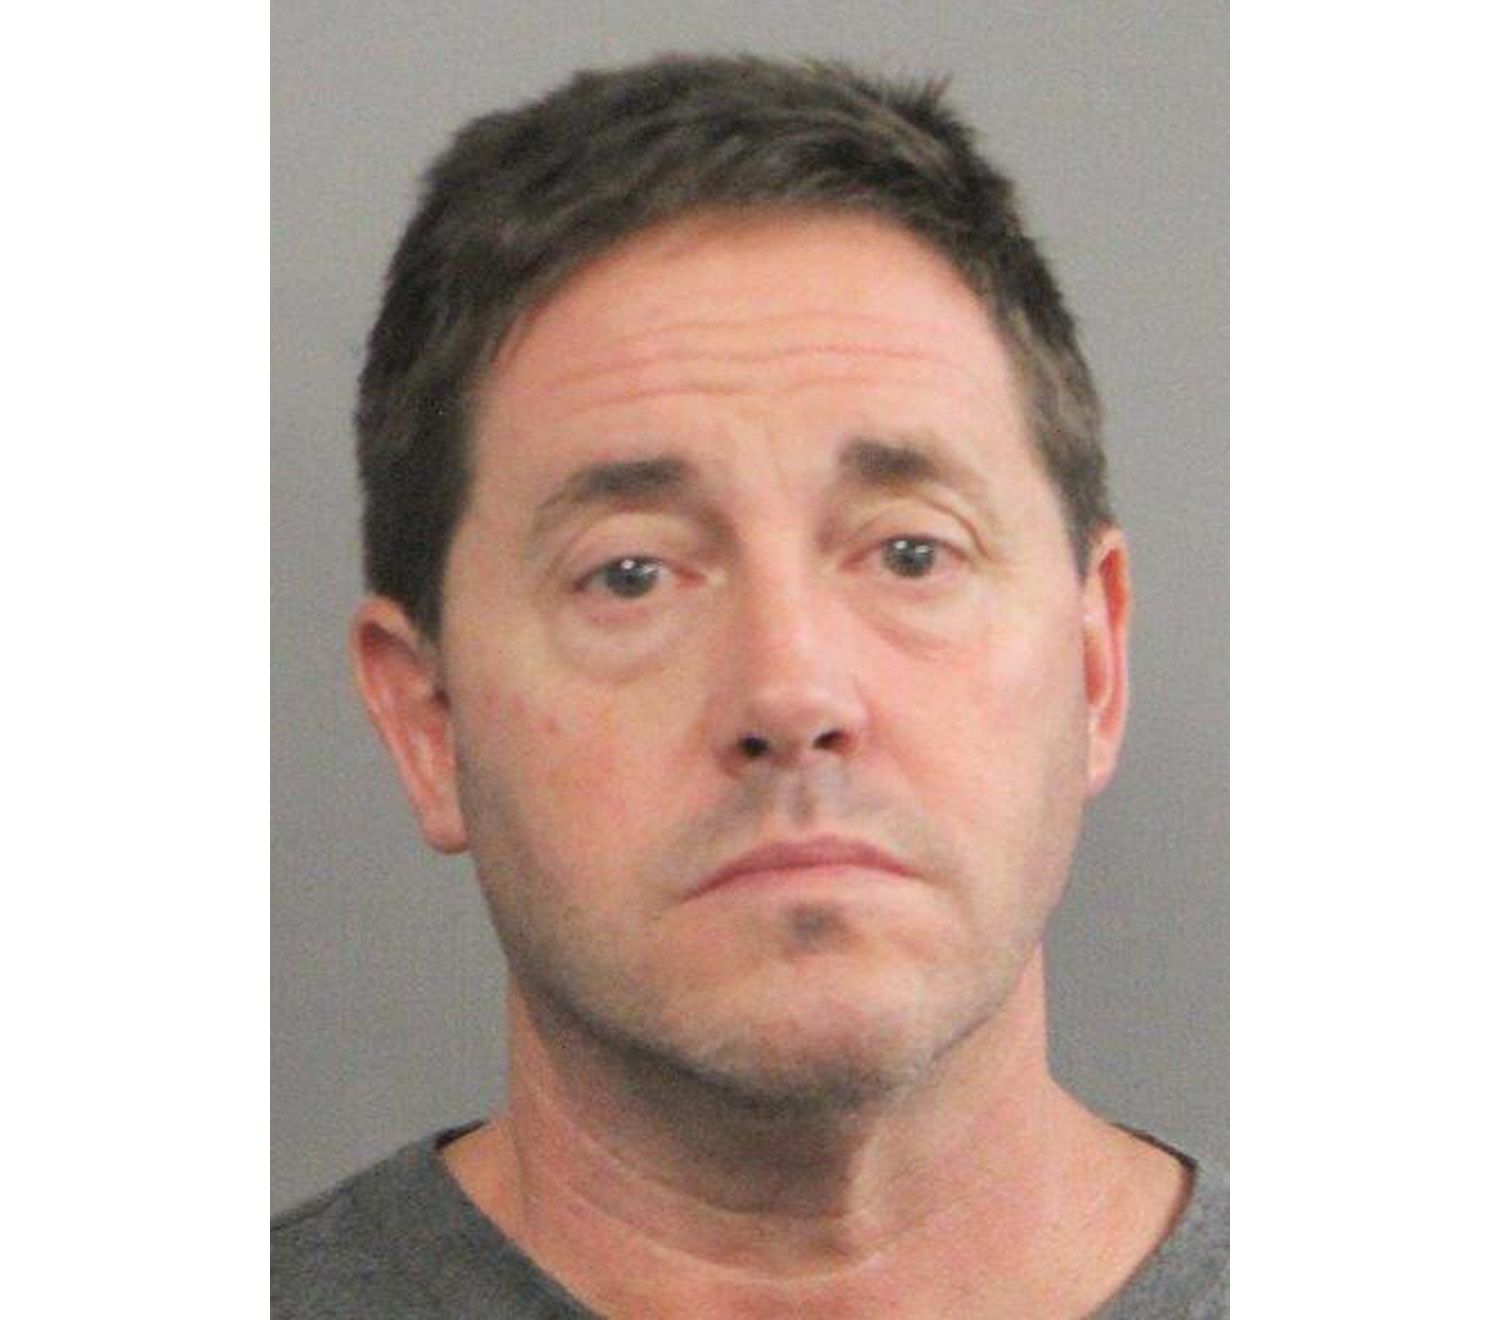 Robert Kingston, 54, of Kenner, was arrested and booked with aggravated assault with a firearm.